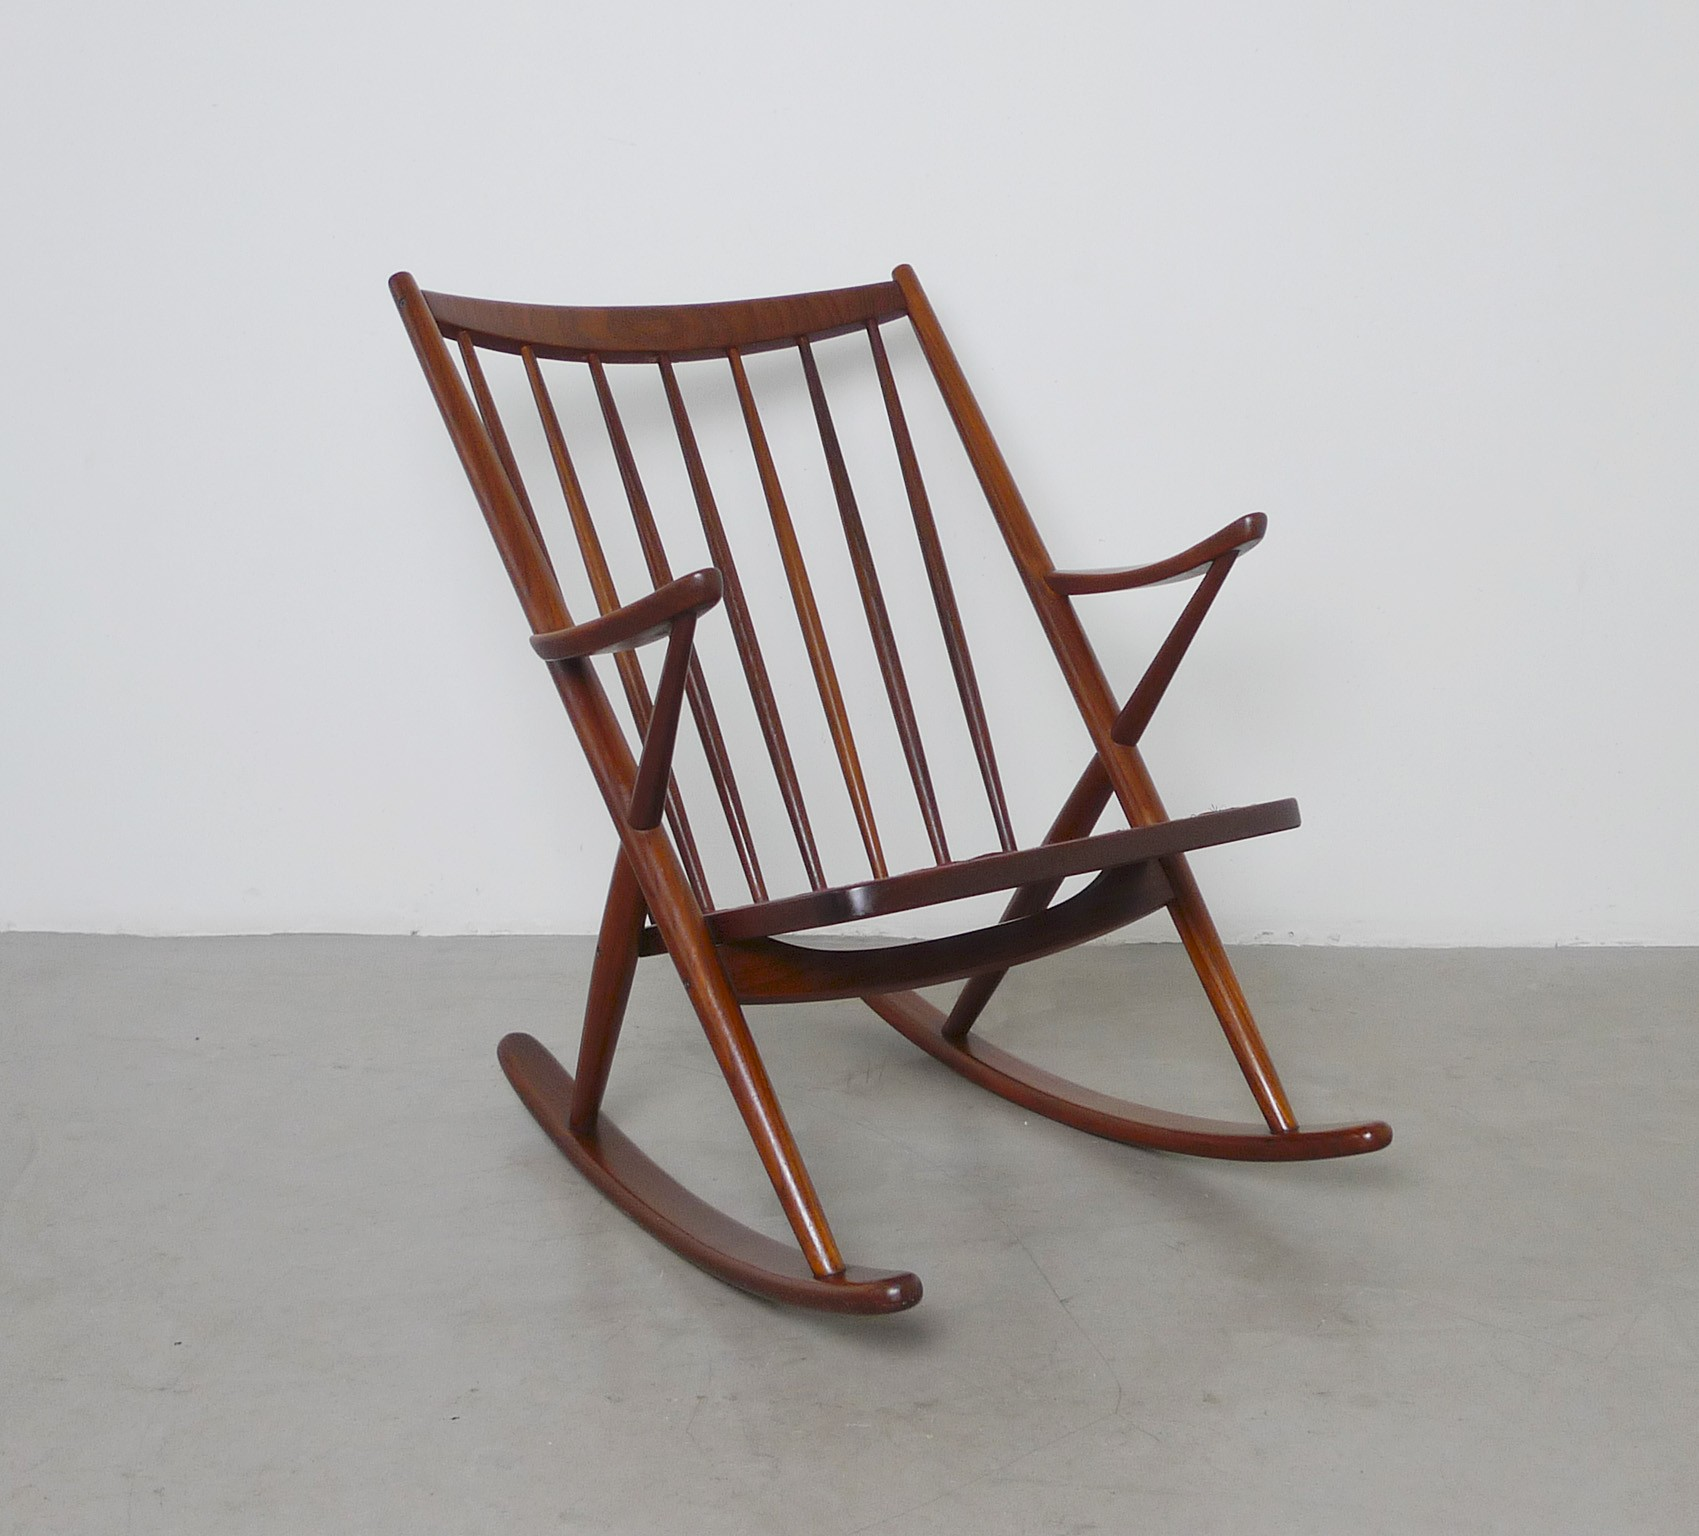 Frank reenskaug rocking chair - Bramin Rocking Chair In Teak And Red Fabric Frank Reenskaug 1958 Previous Next